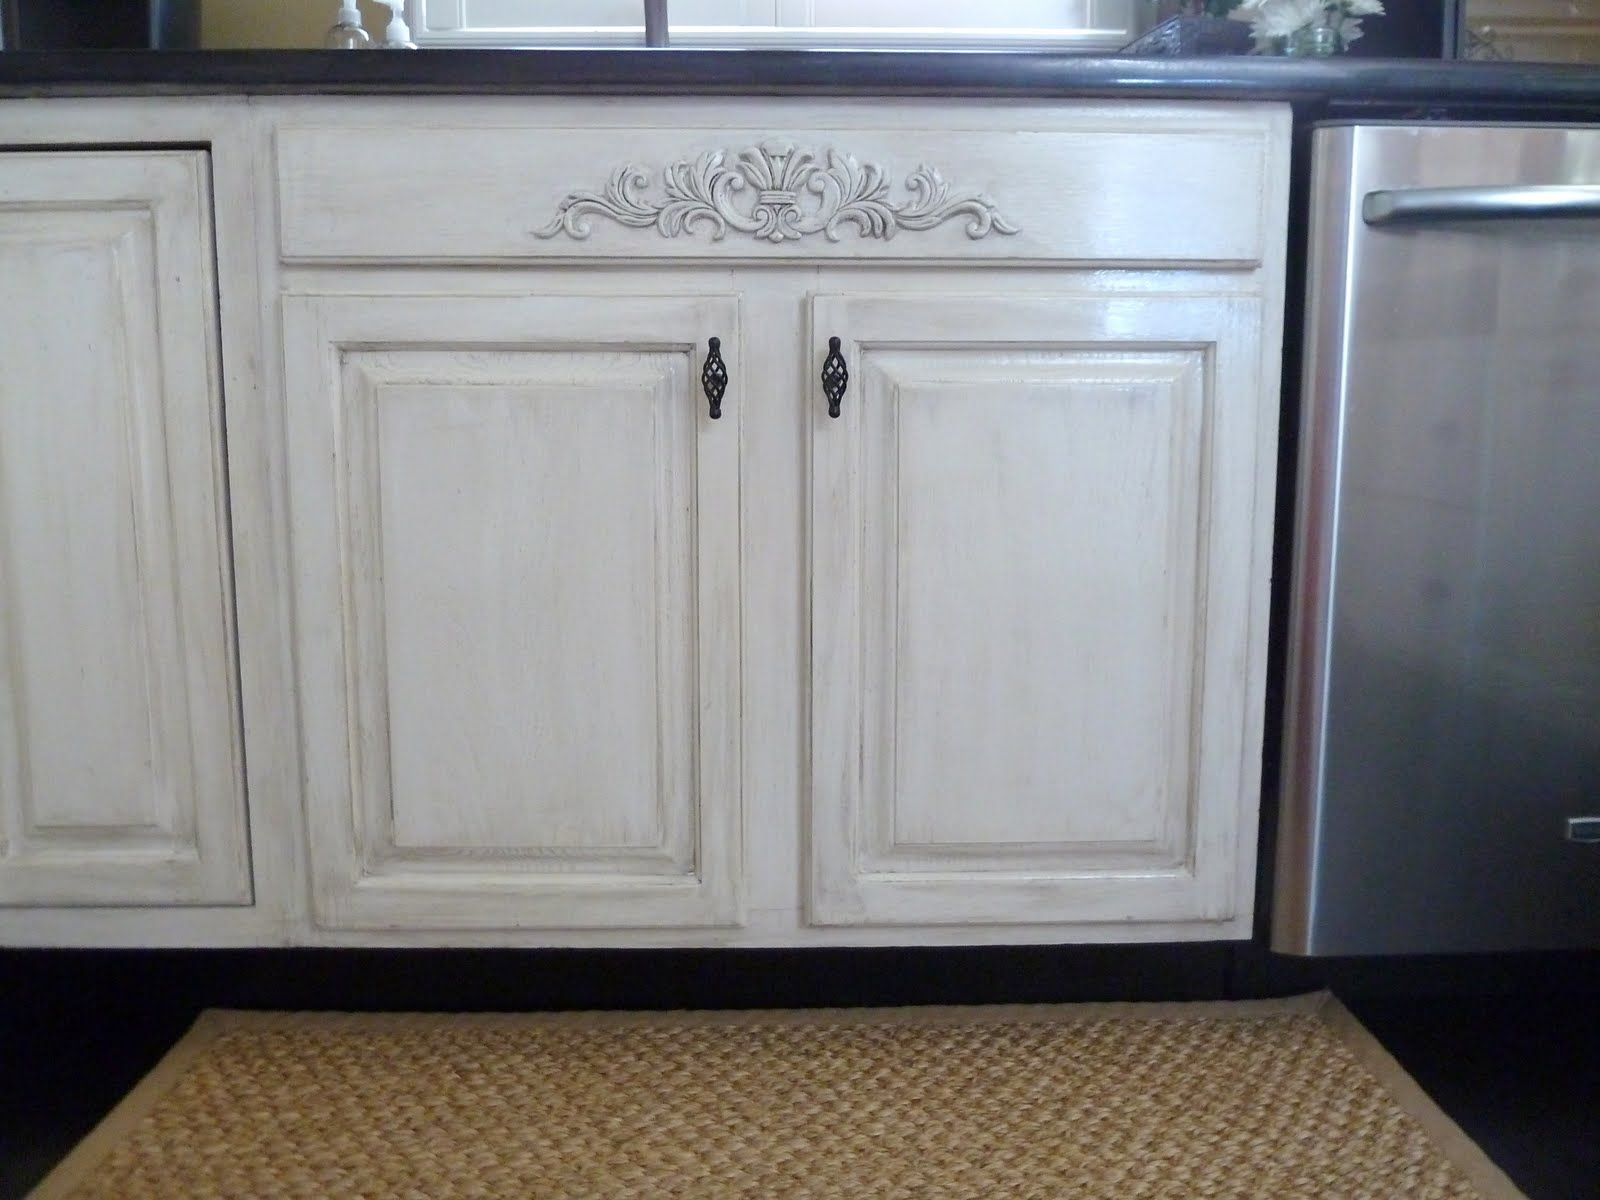 How To Design With Milk Paint Kitchen Cabinets Distressed Kitchen Distressed Kitchen Cabinets Milk Paint Kitchen Cabinets